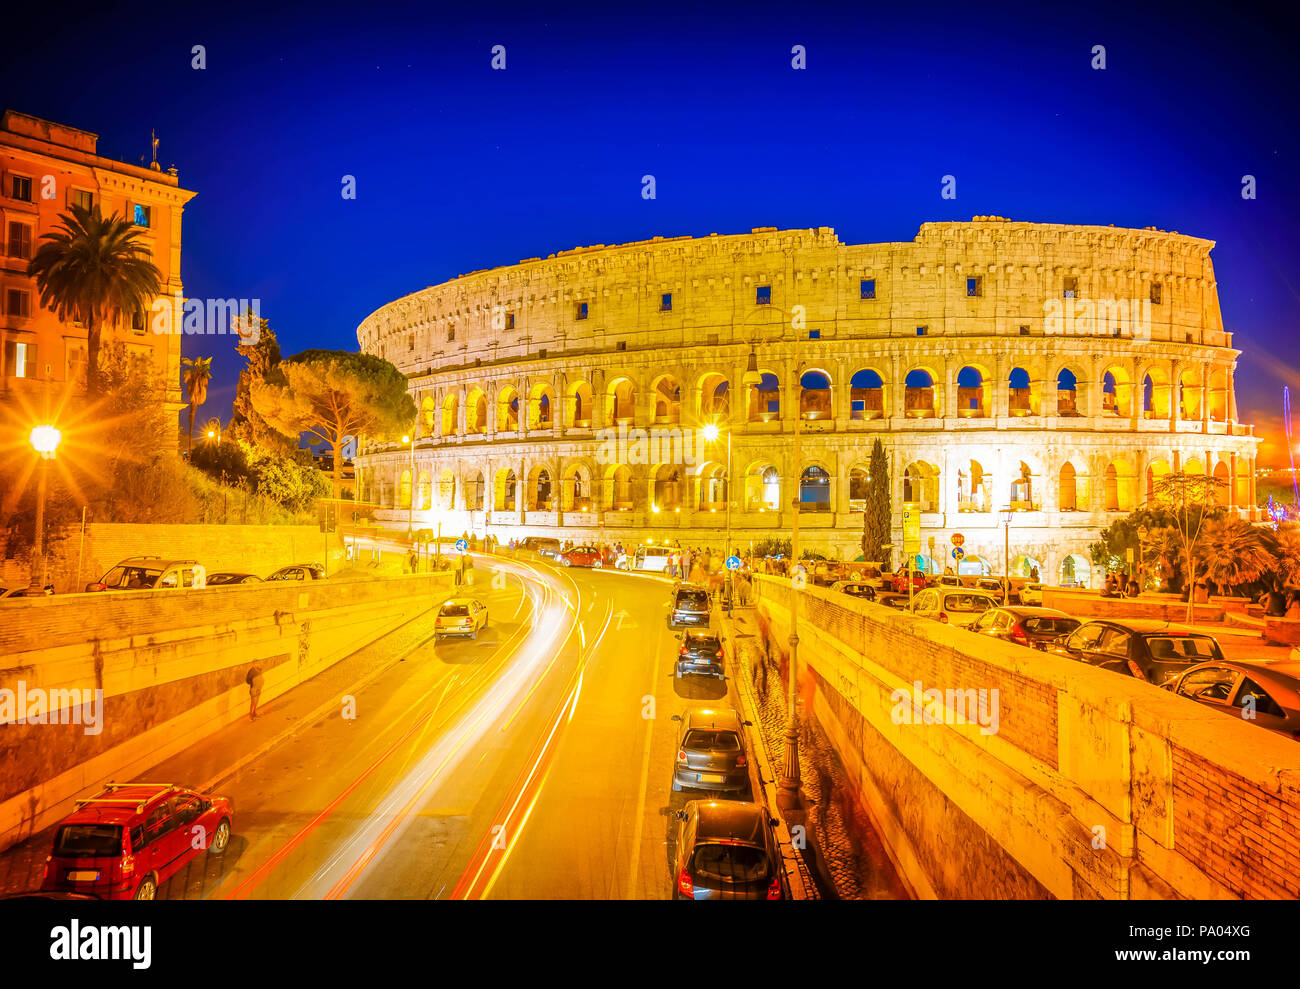 view of Colosseum illuminated at nighwith traffic lightst in Rome, Italy, retro toned - Stock Image